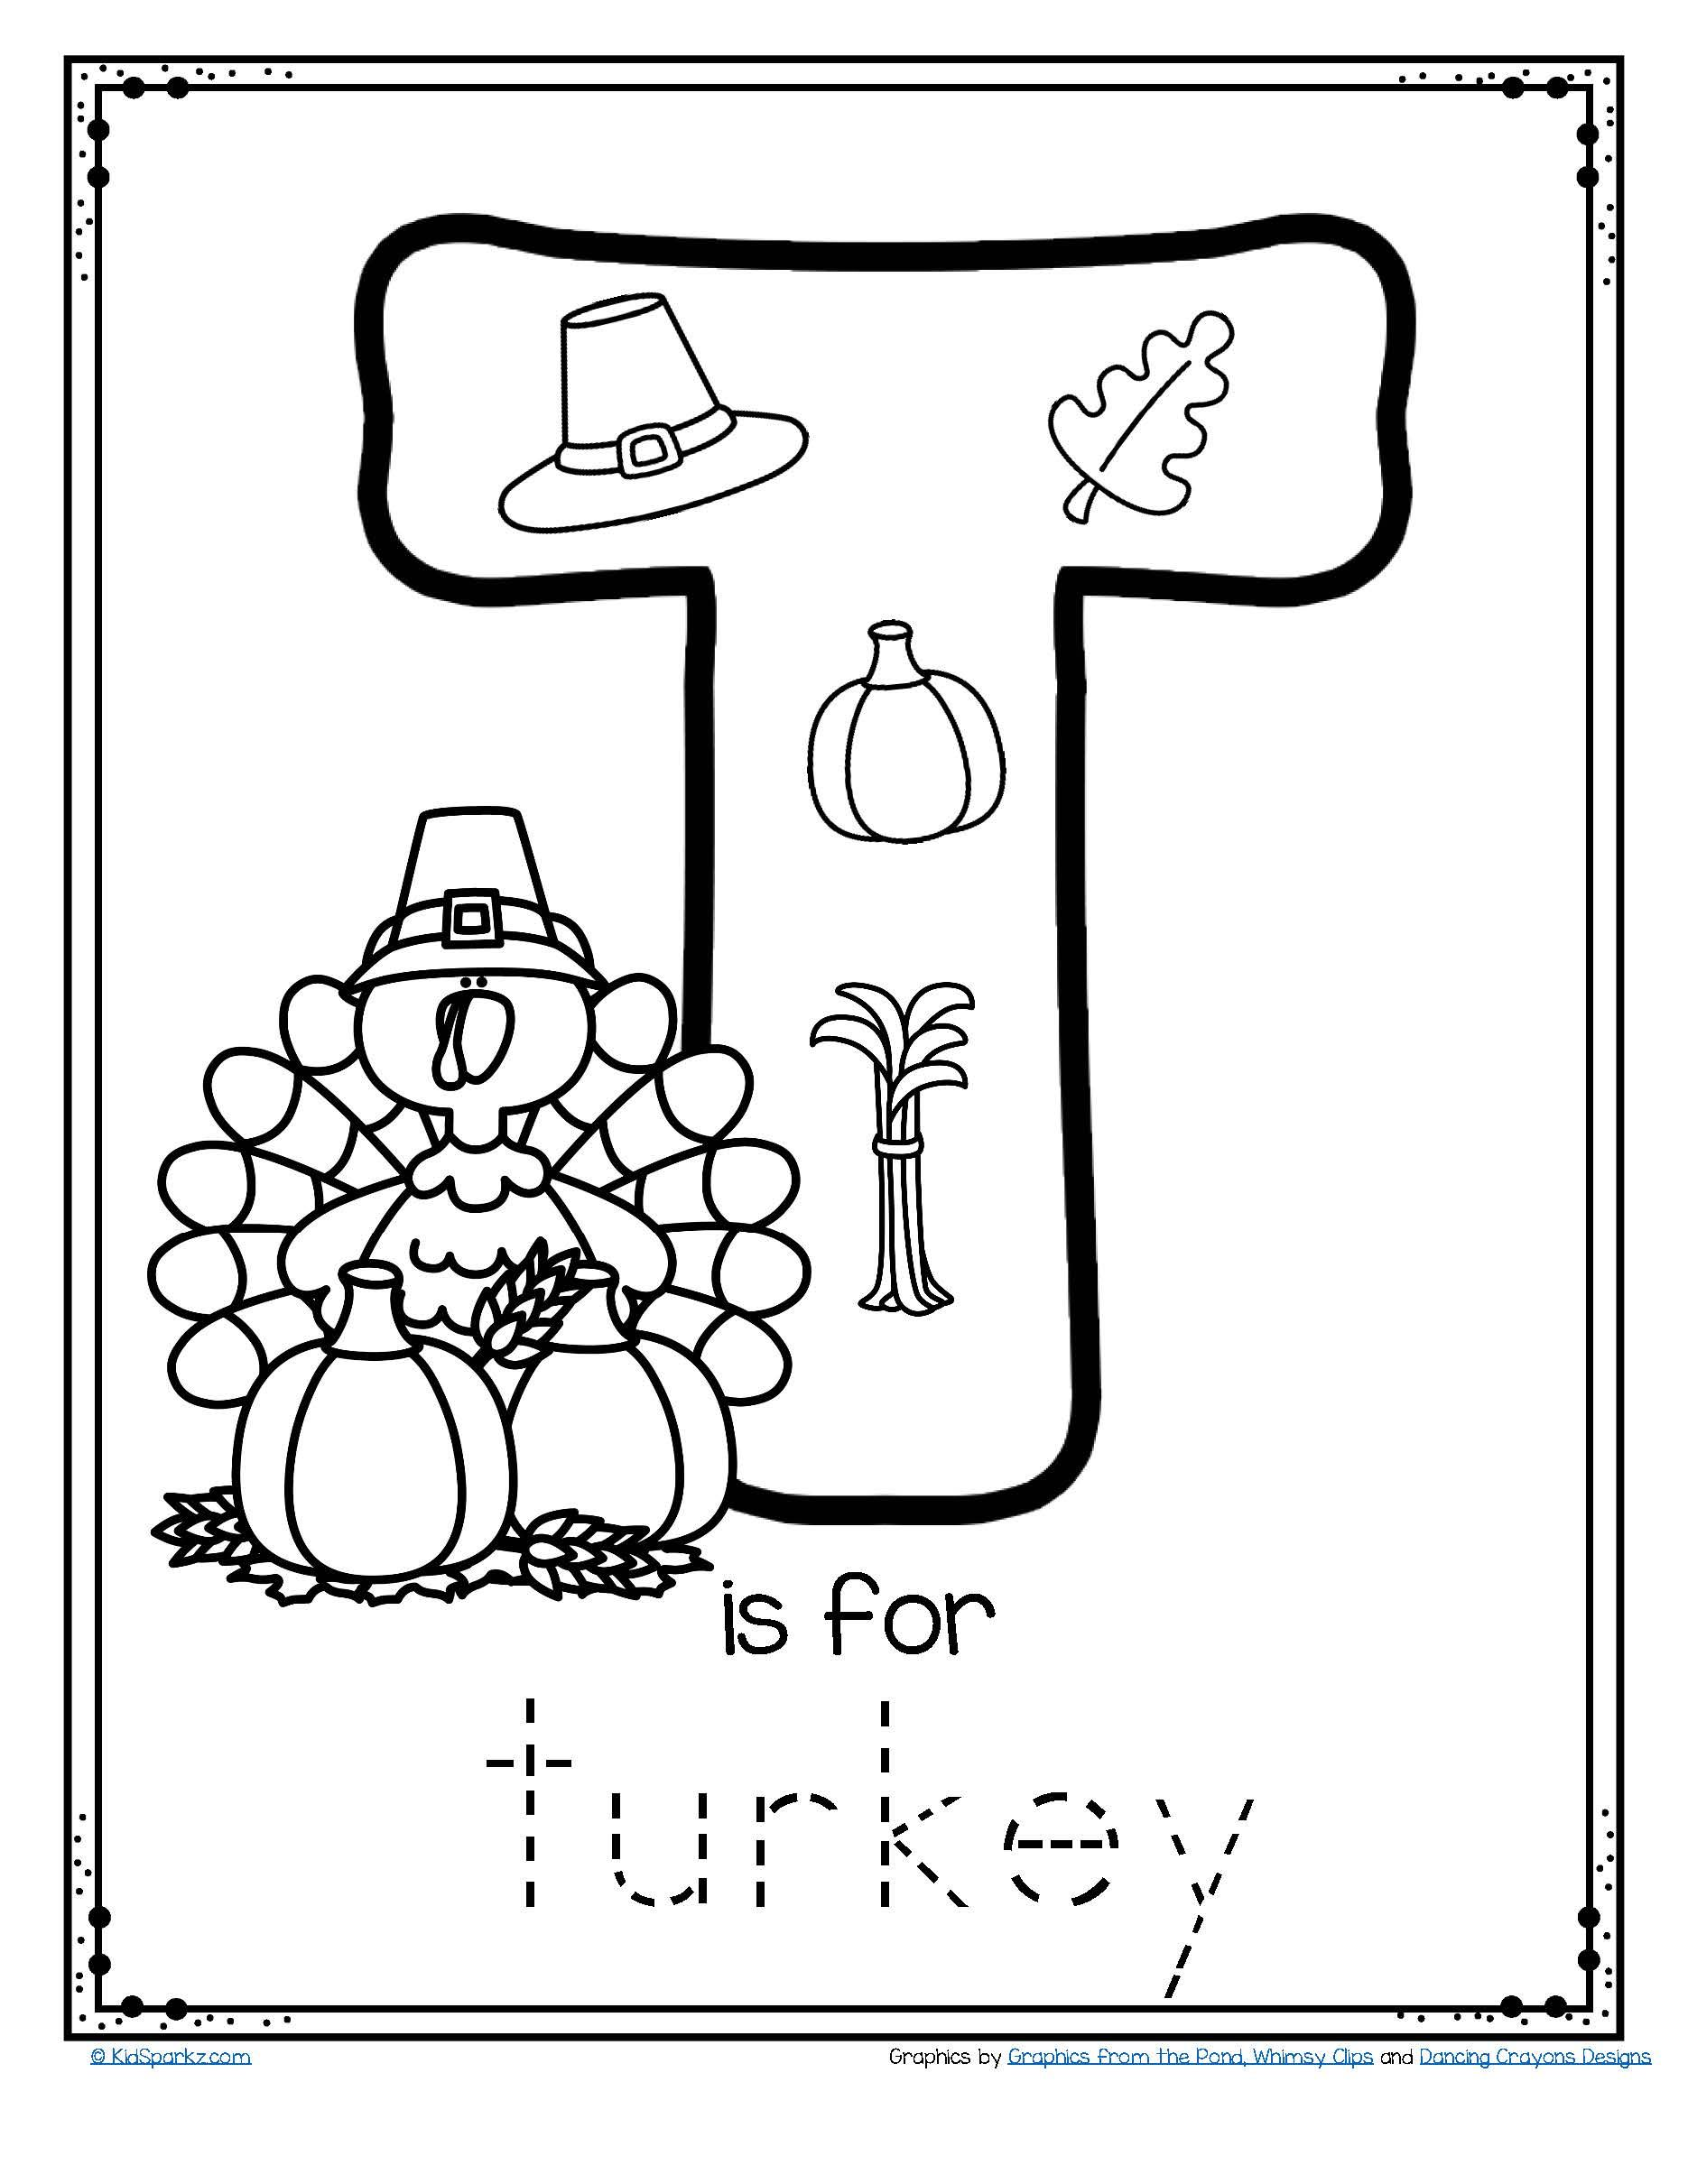 Free T Is For Turkey Trace And Color Alphabet Printables For Thanksgiving Thanksgiving Activities Preschool Thanksgiving Worksheets Thanksgiving Preschool